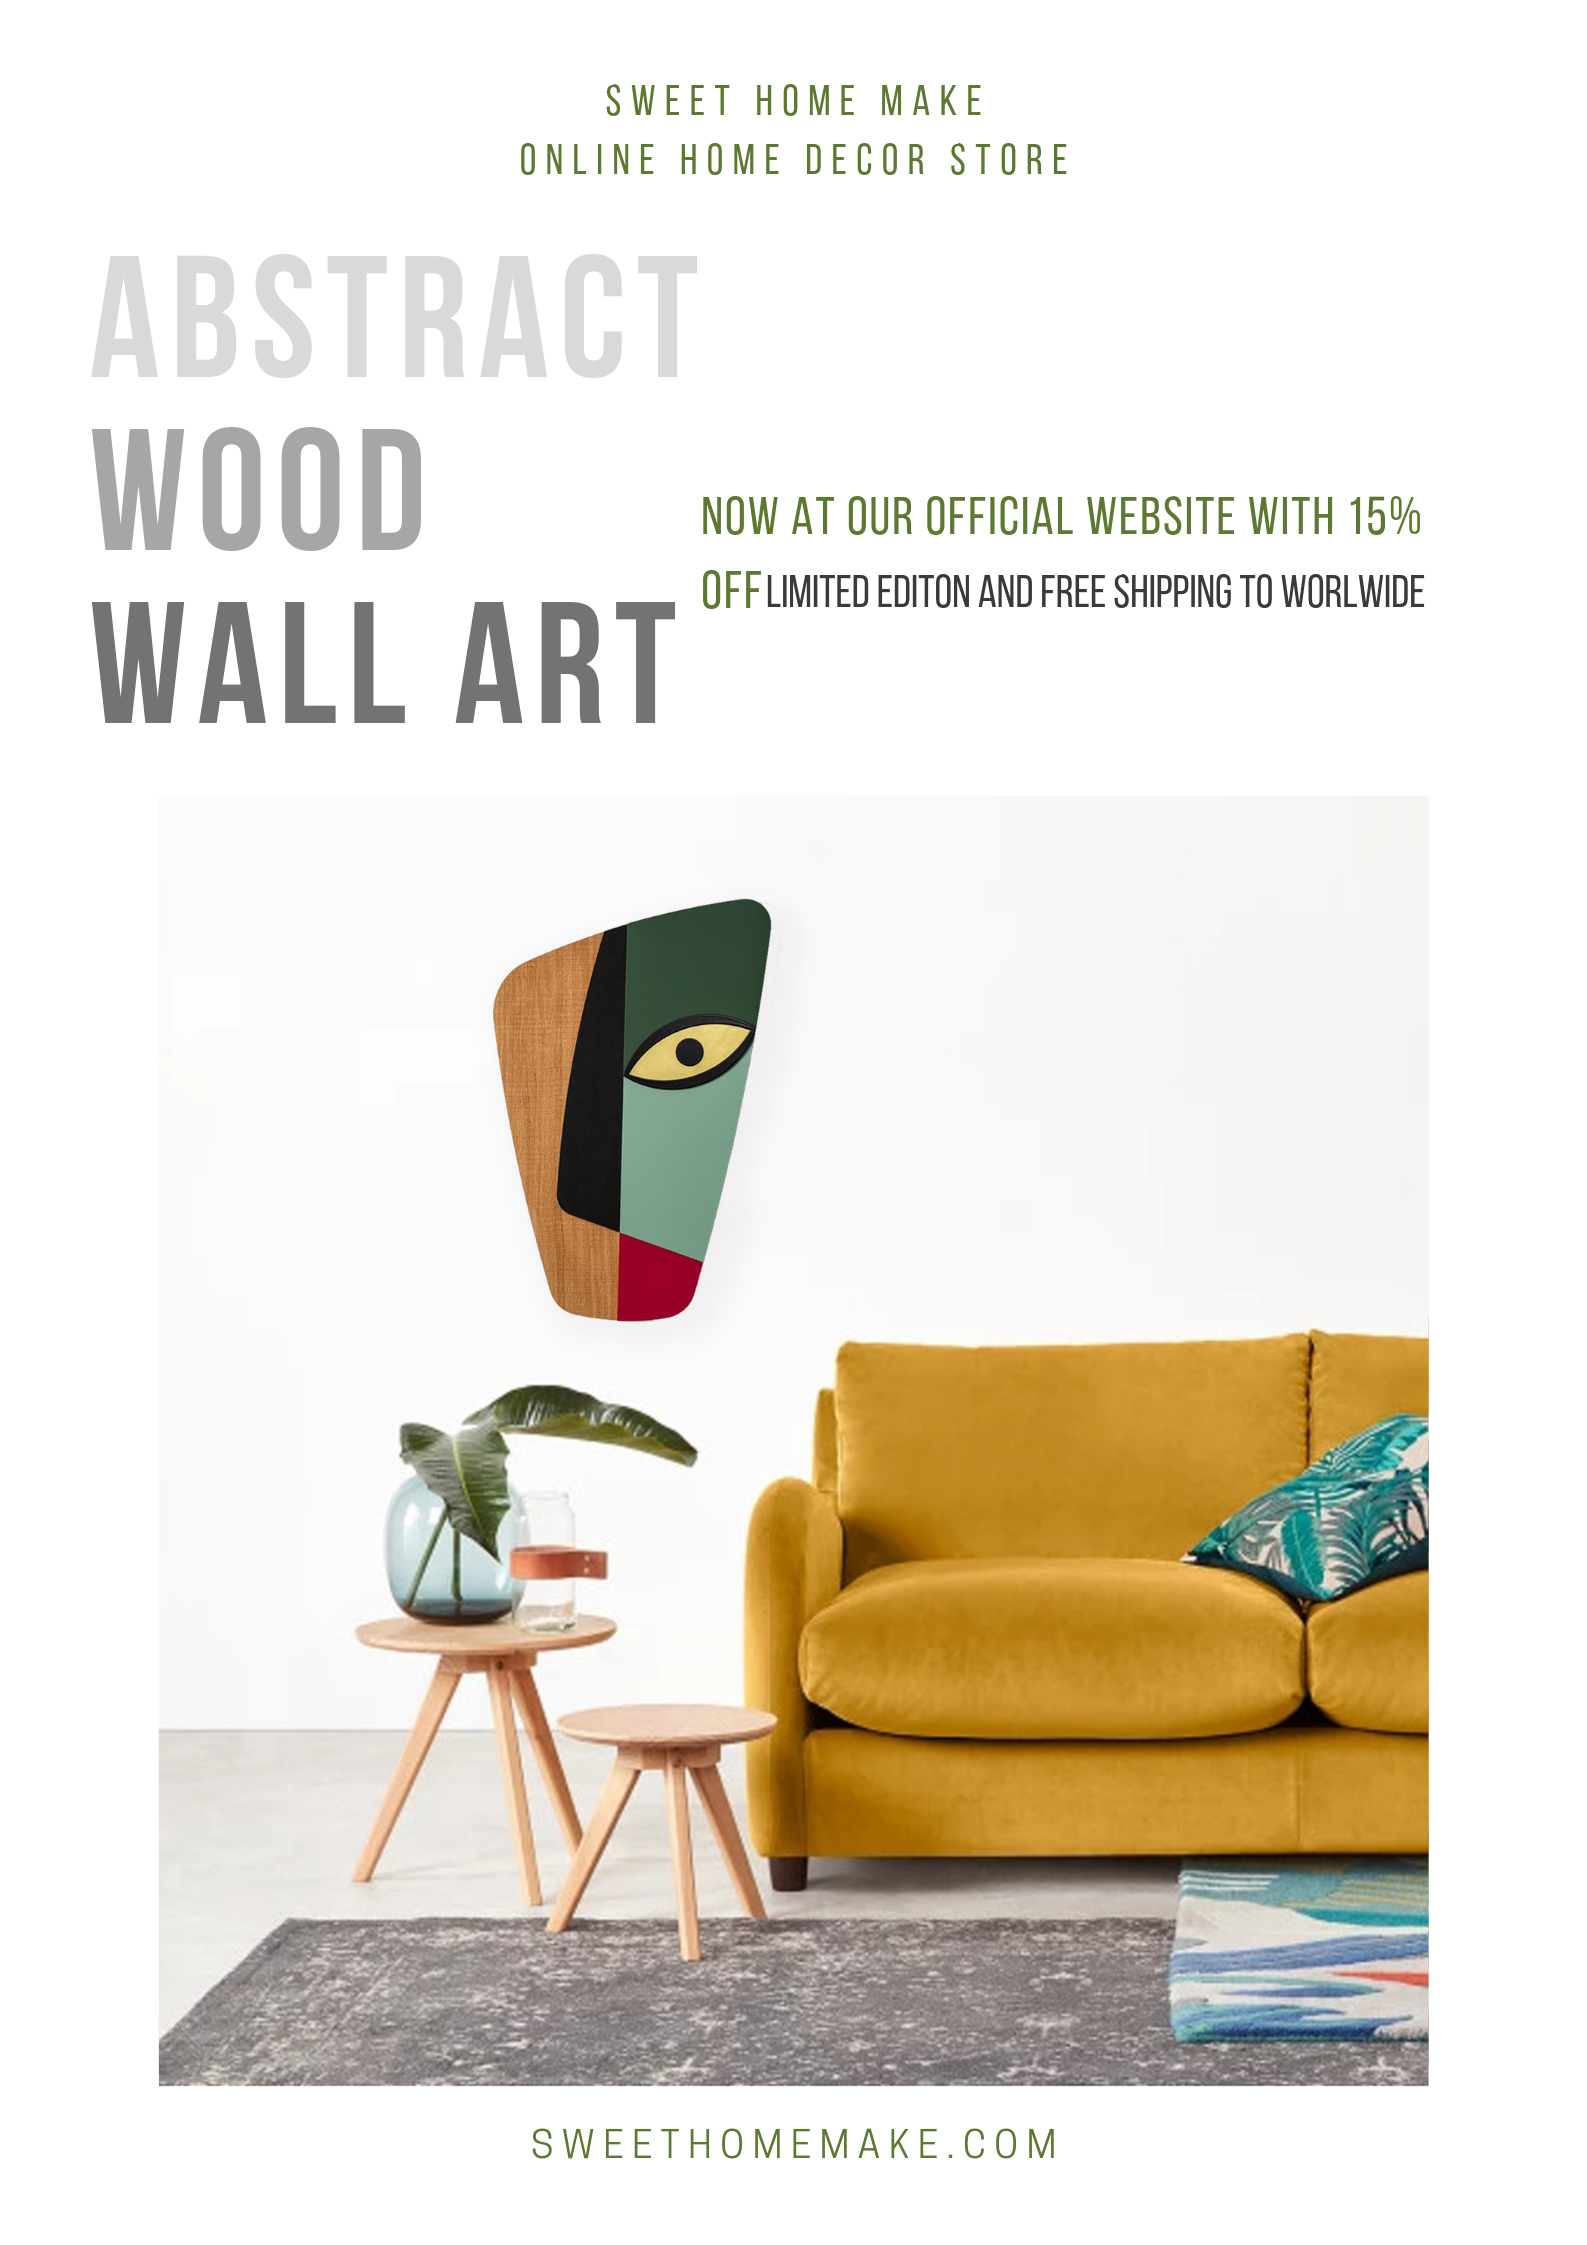 Abstract Wall Decor with Wood Green Wall Art